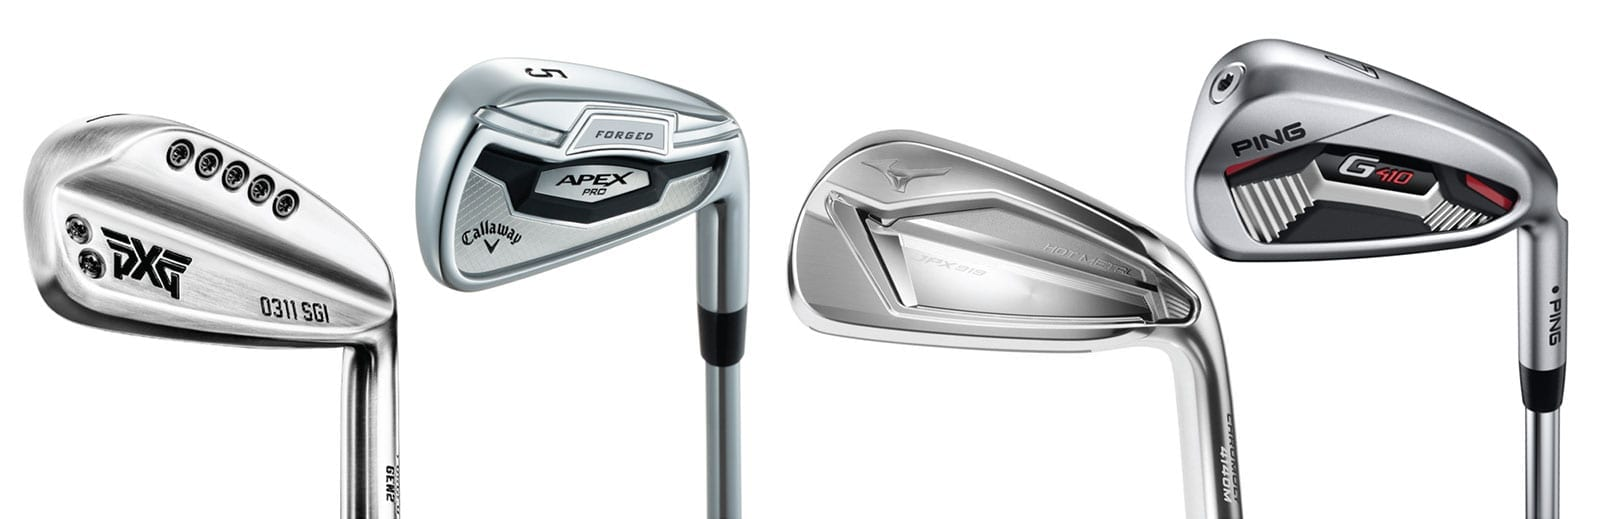 irons, iron fitting